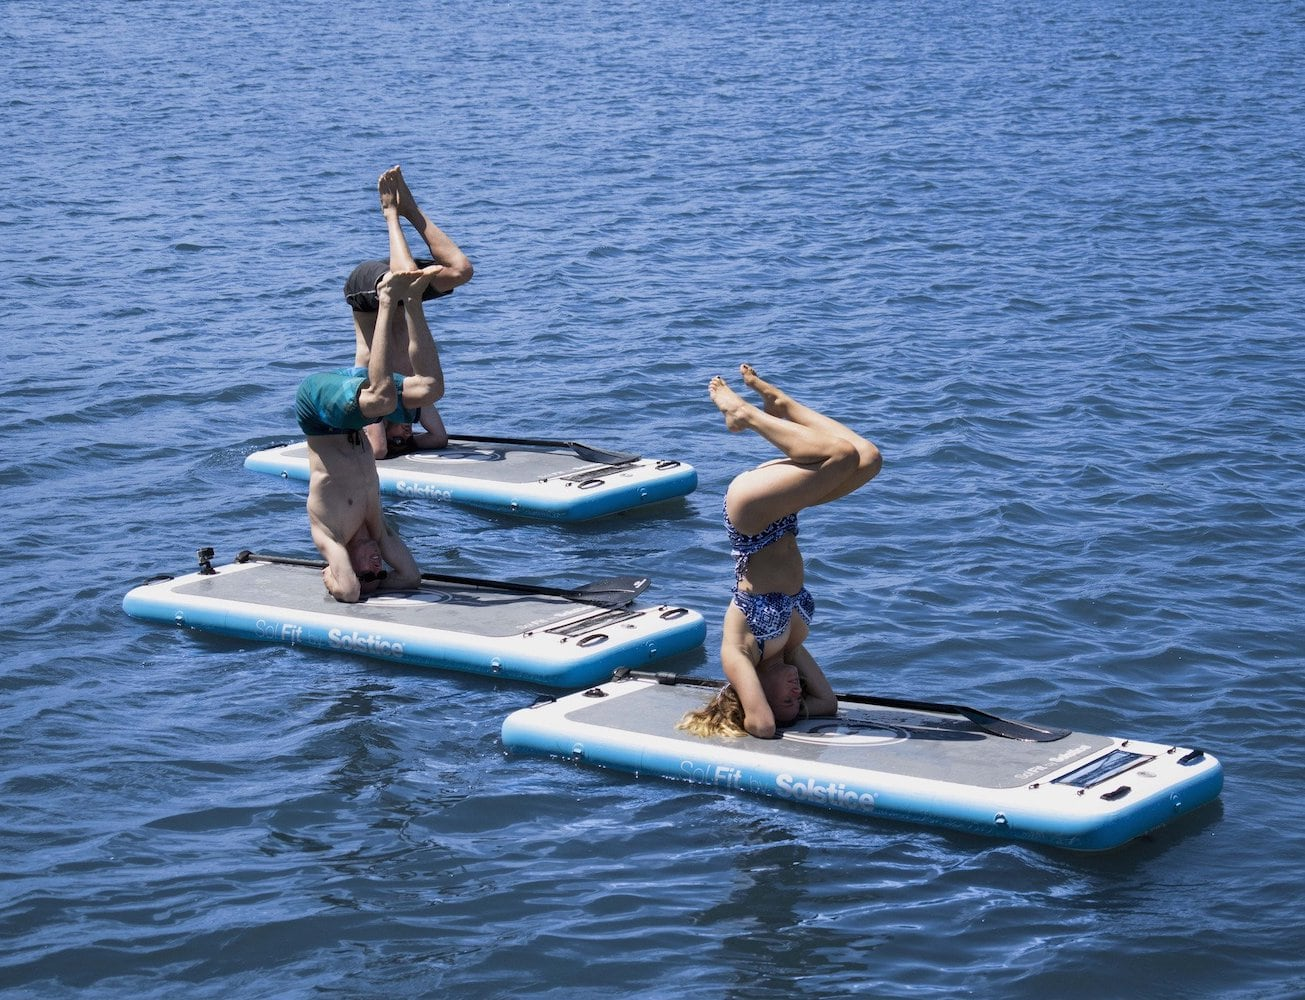 Swimline SolFit Aquatic Fitness Mat lets you workout on water